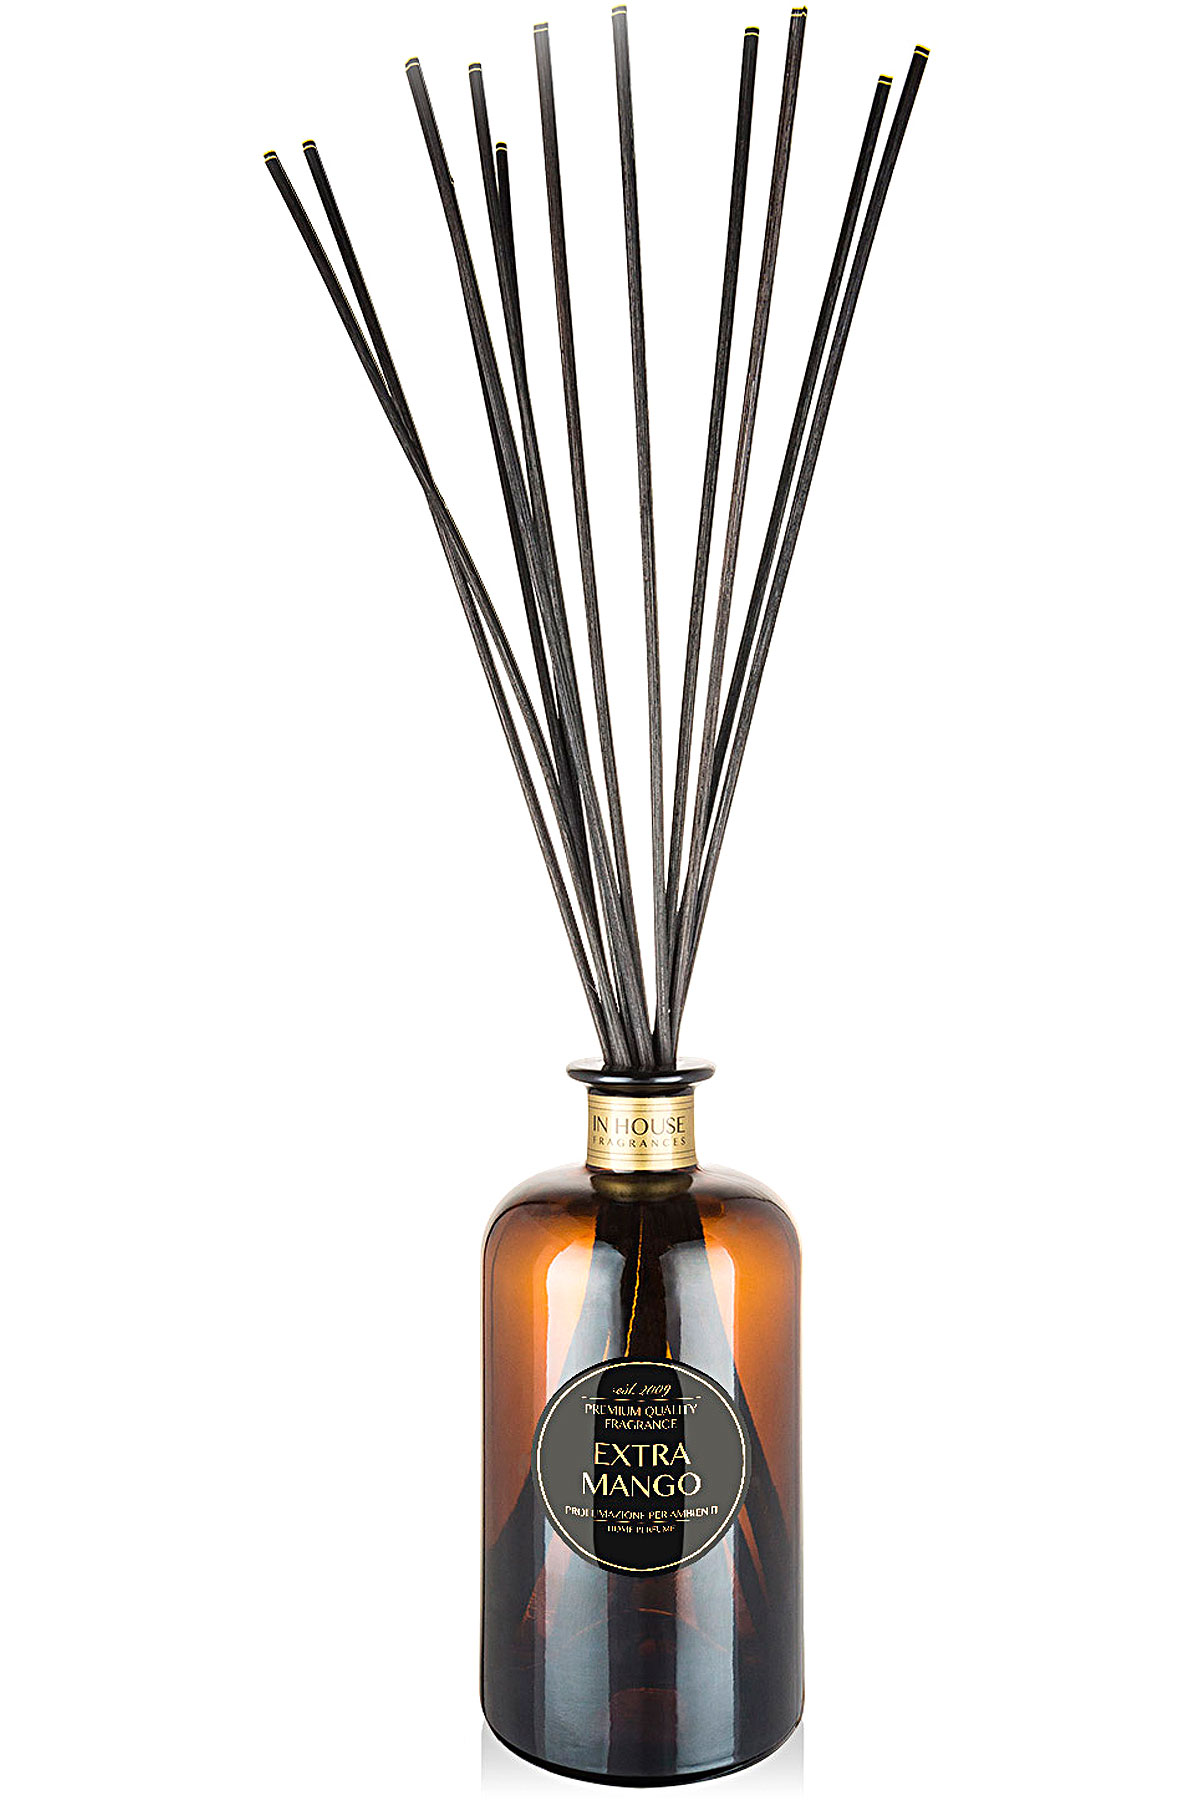 In House Fragrances Home Scents for Men, Extra Mango - Home Diffuser - 500 Ml, 2019, 500 ml